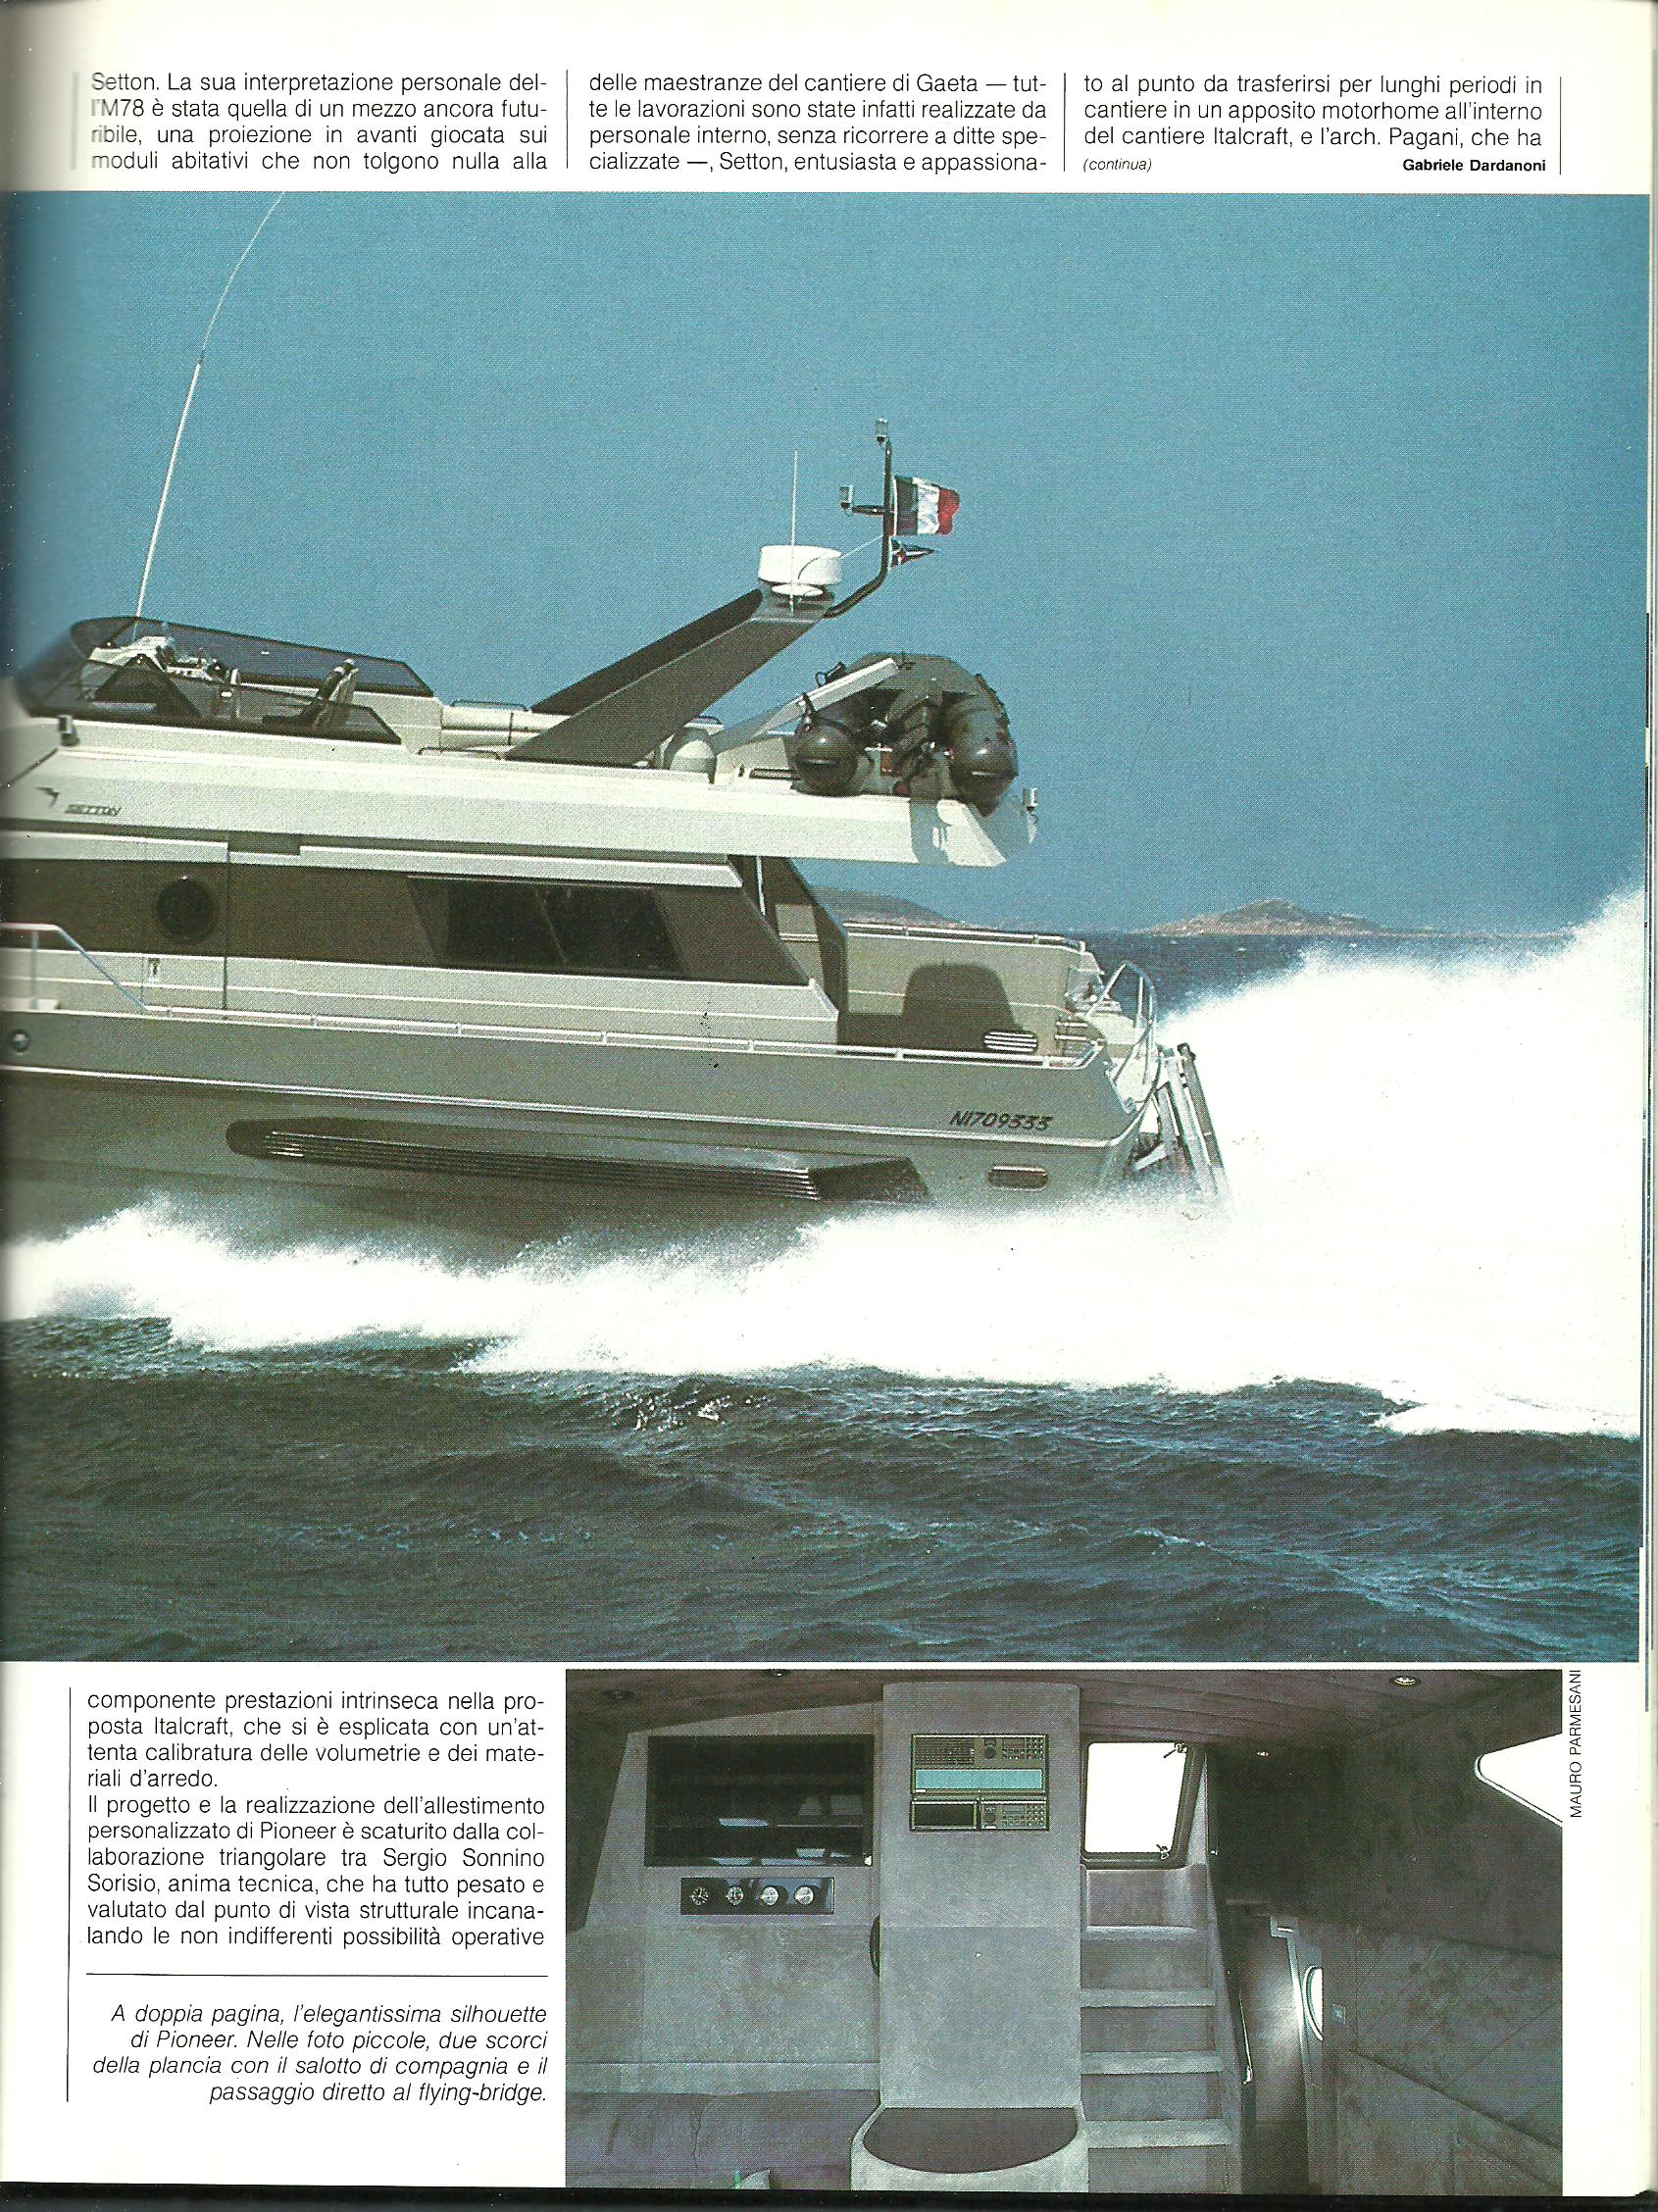 1987 11 PRESS ITALCRAFT M78 Uomomare 04.jpg